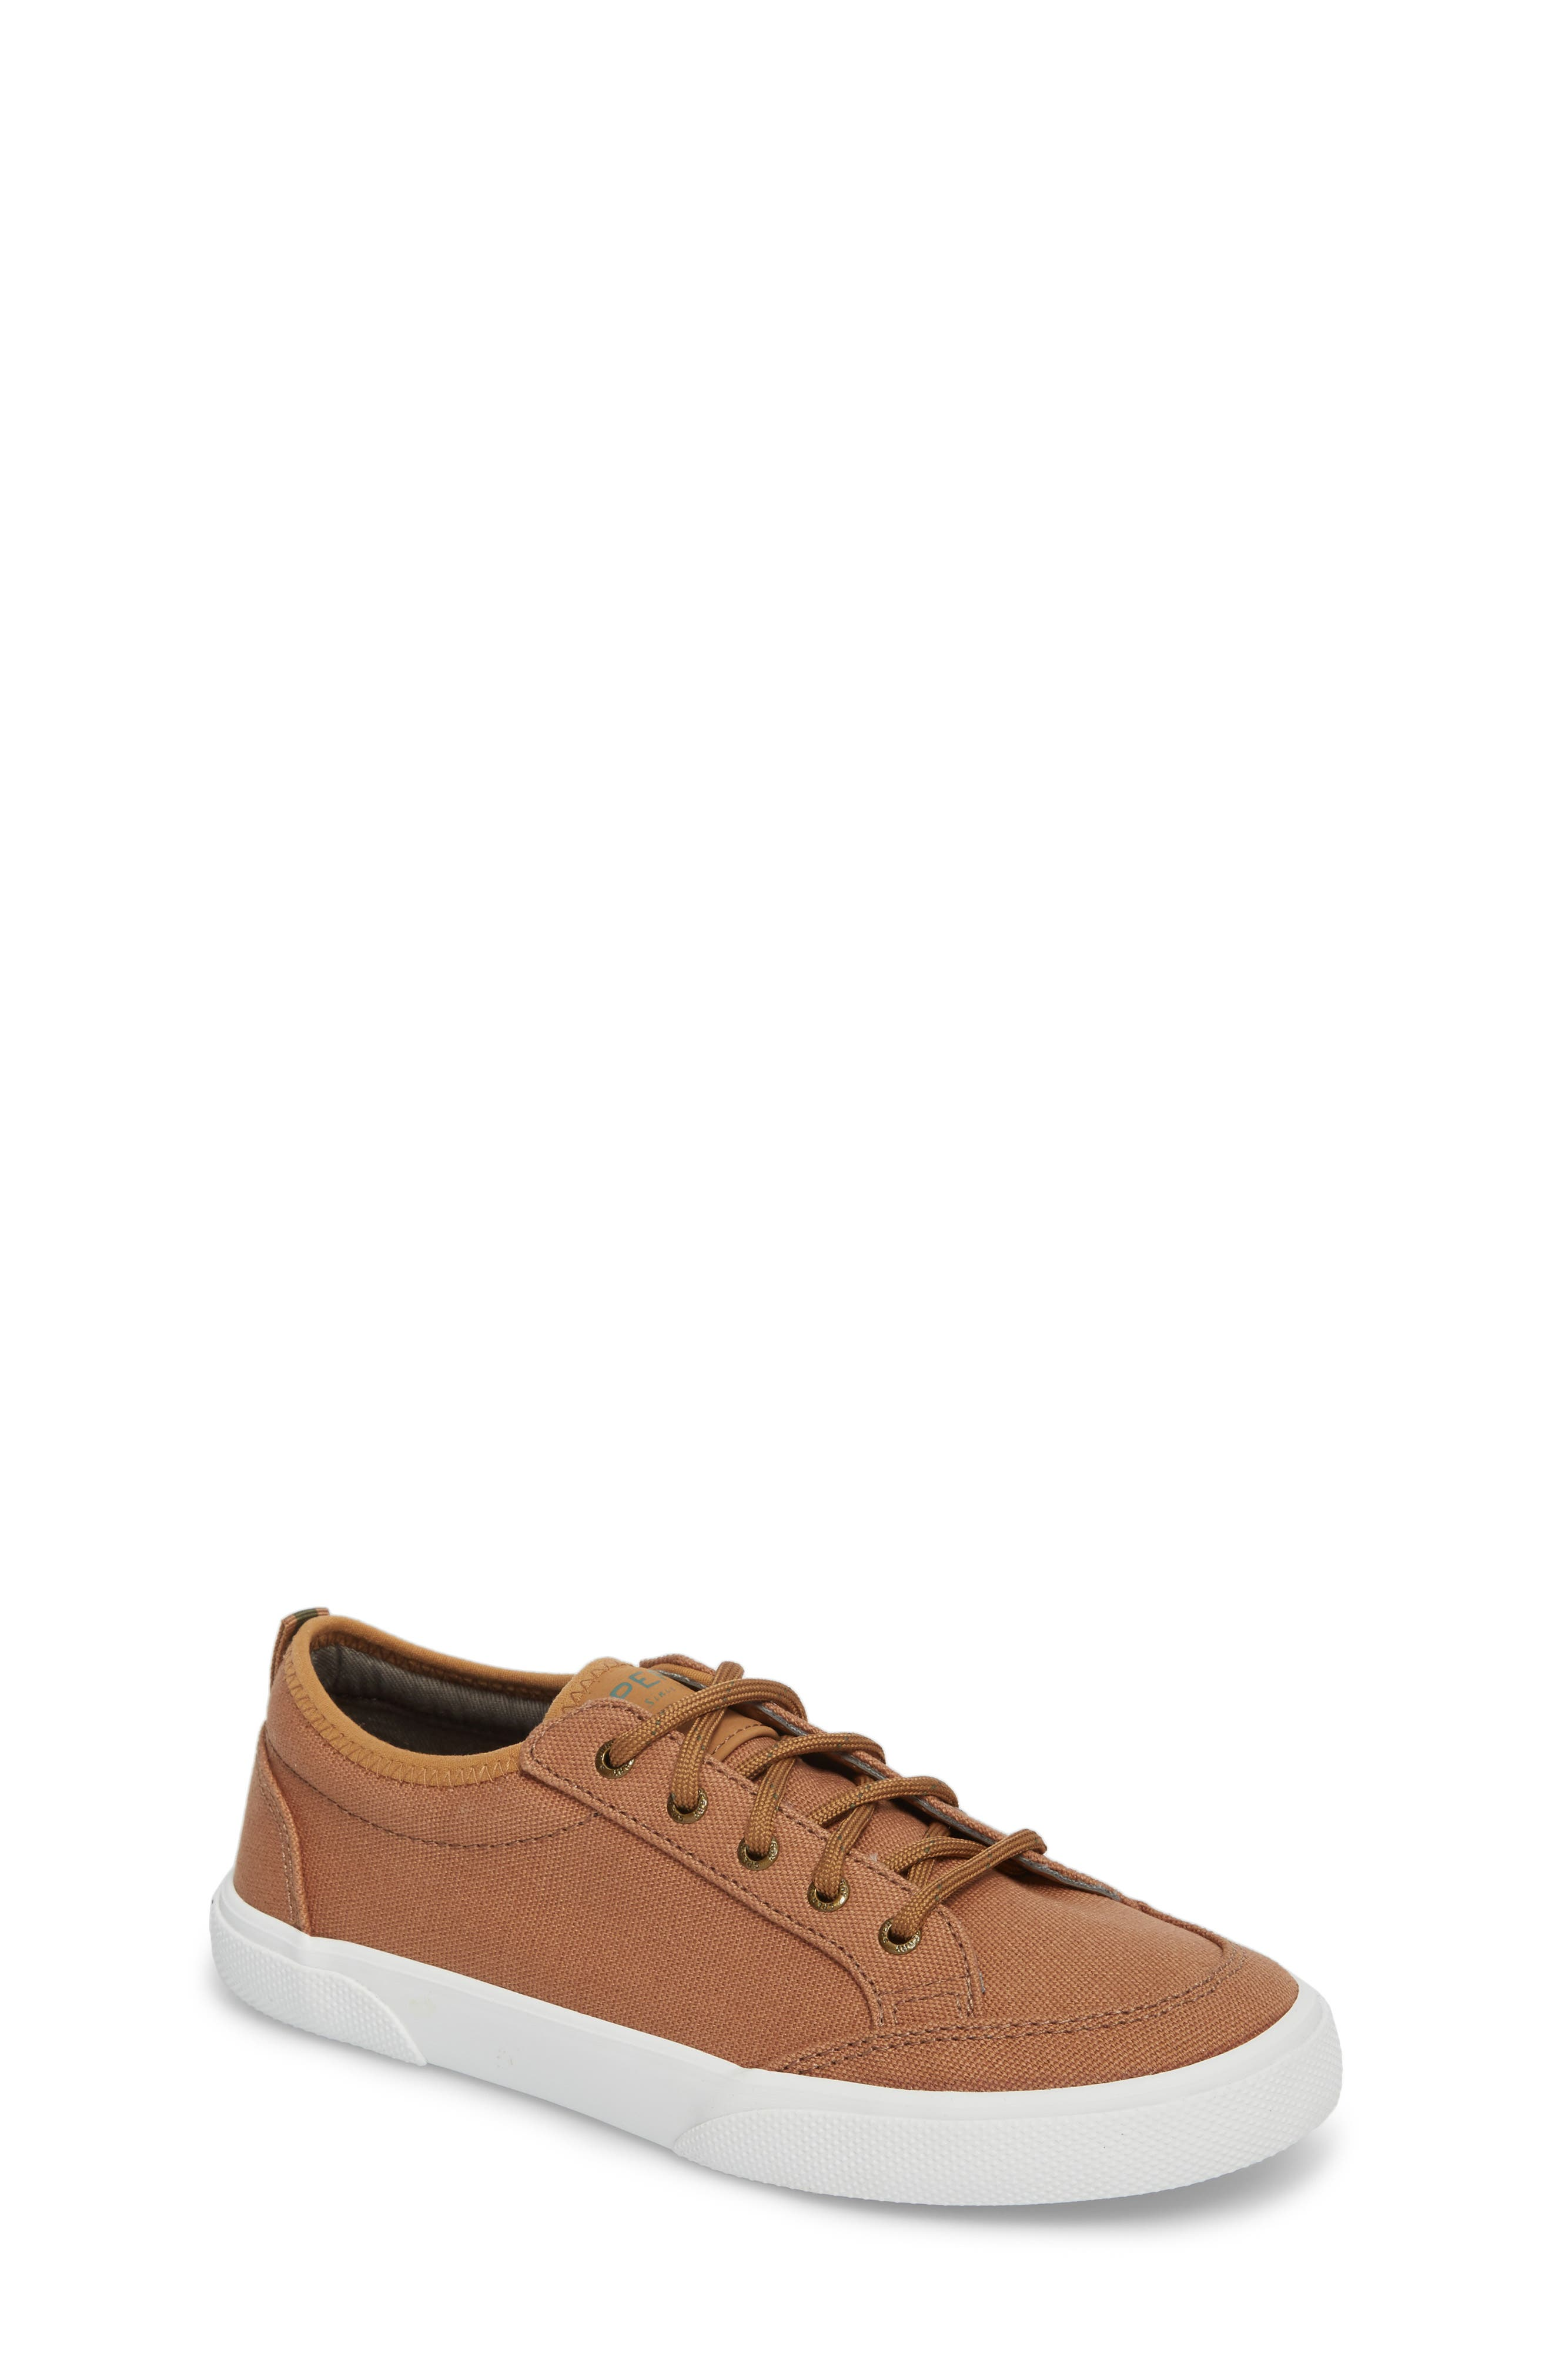 Sperry Deckfin Sneaker,                         Main,                         color, 200